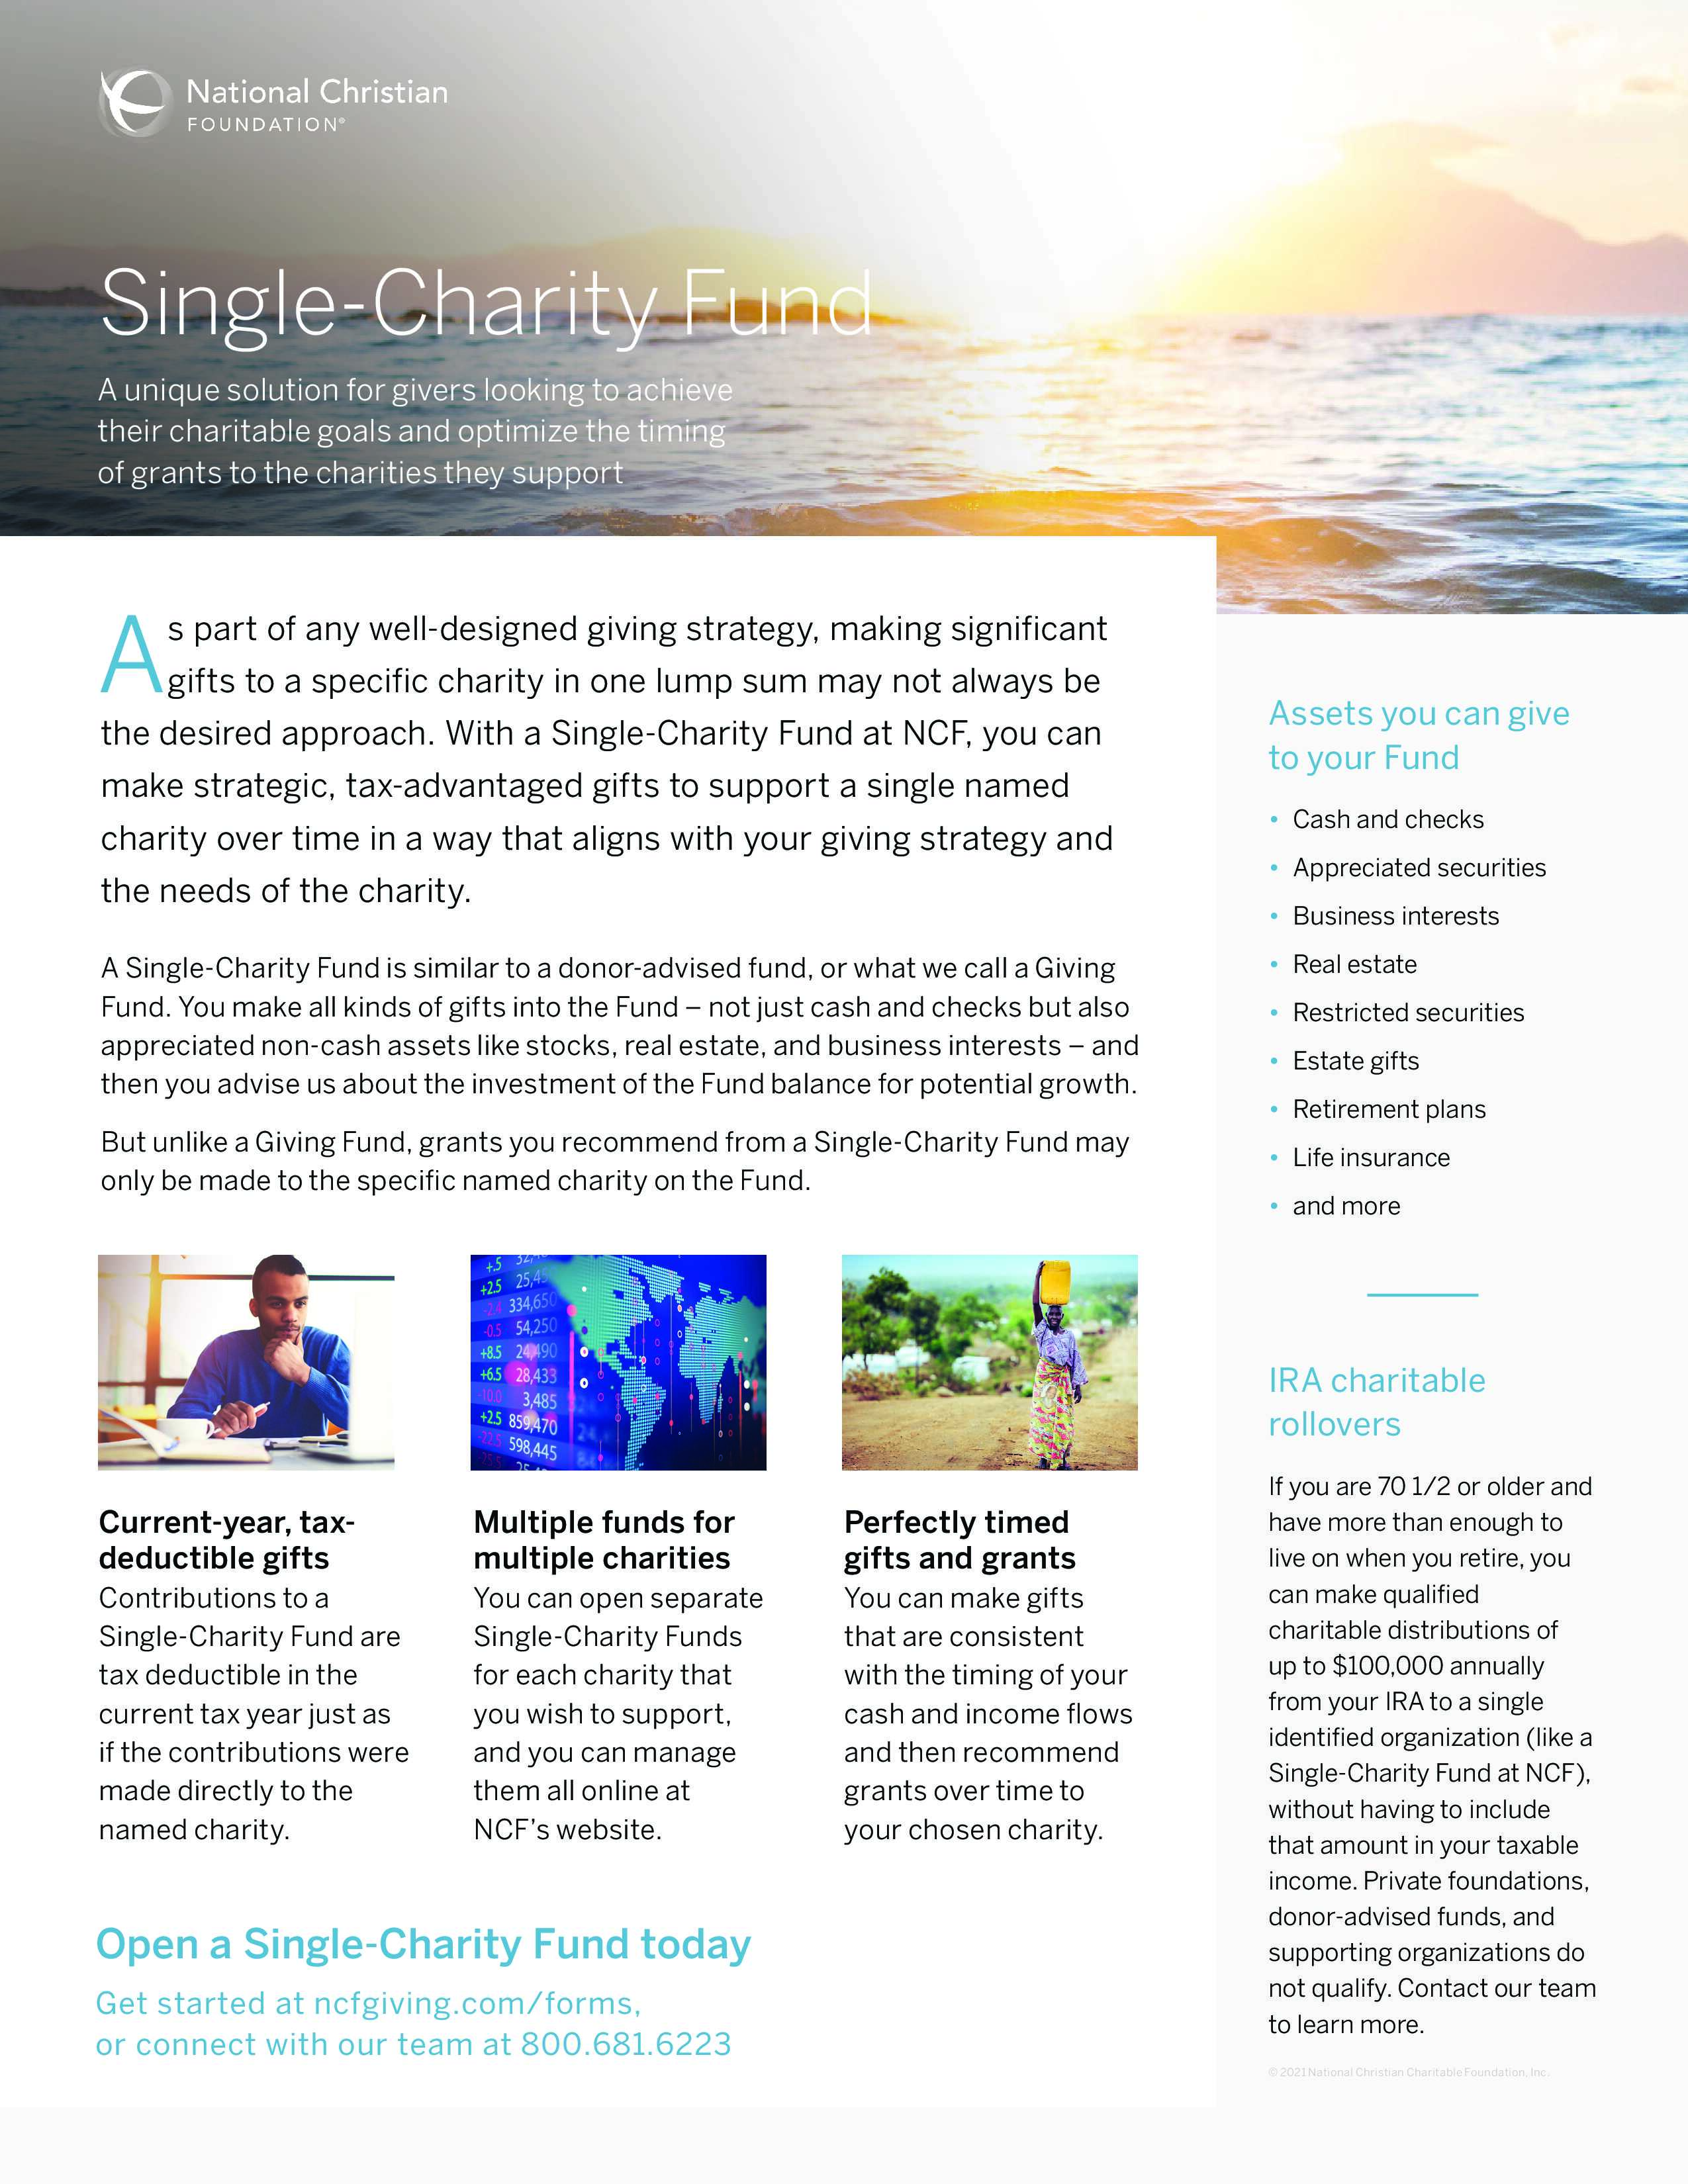 Single-Charity Fund